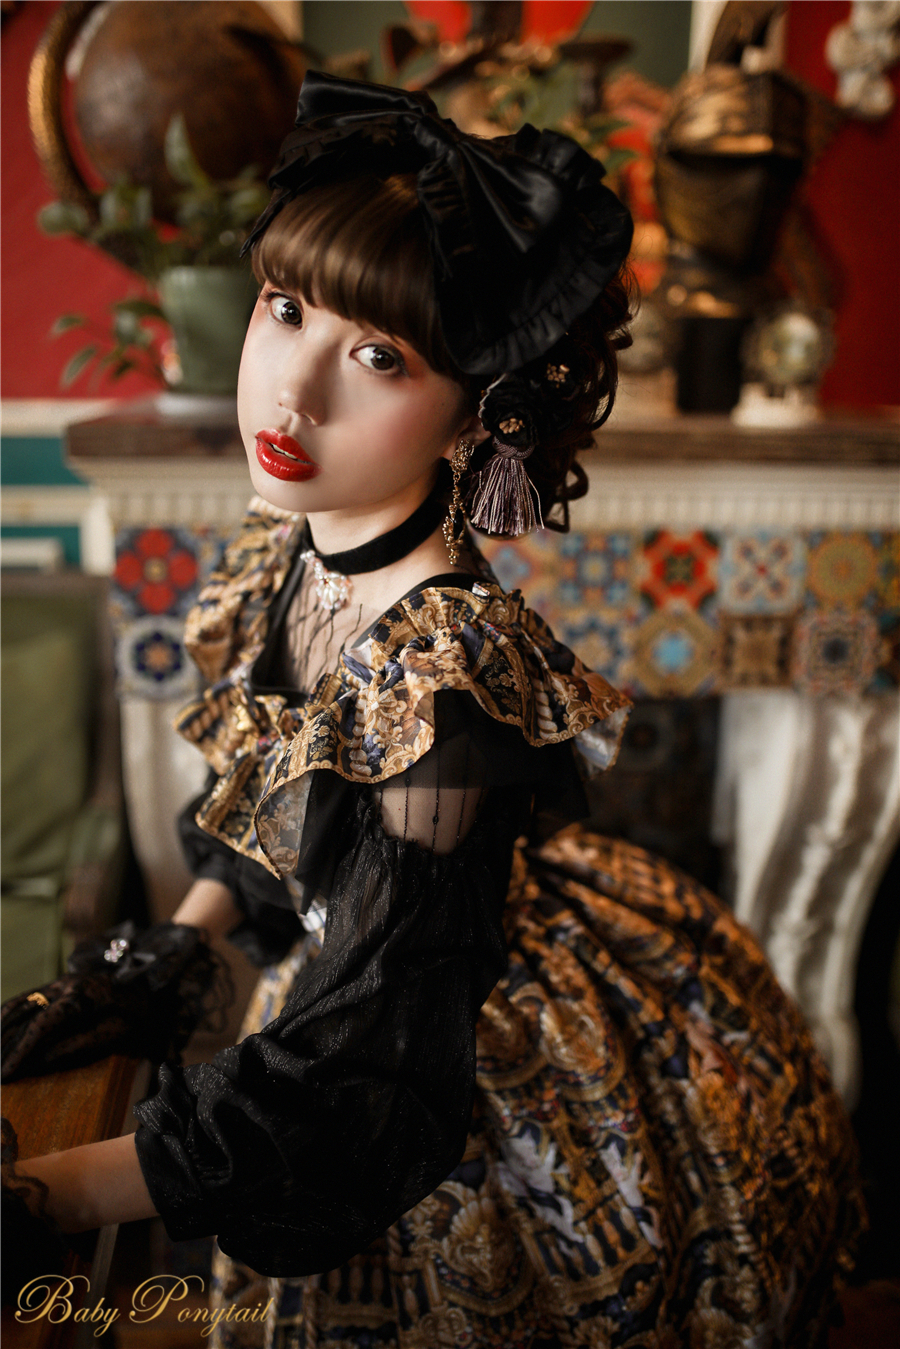 Babyponytail_Model_Ruffle Collar JSK_Black Present Angel_Kaka_16.jpg